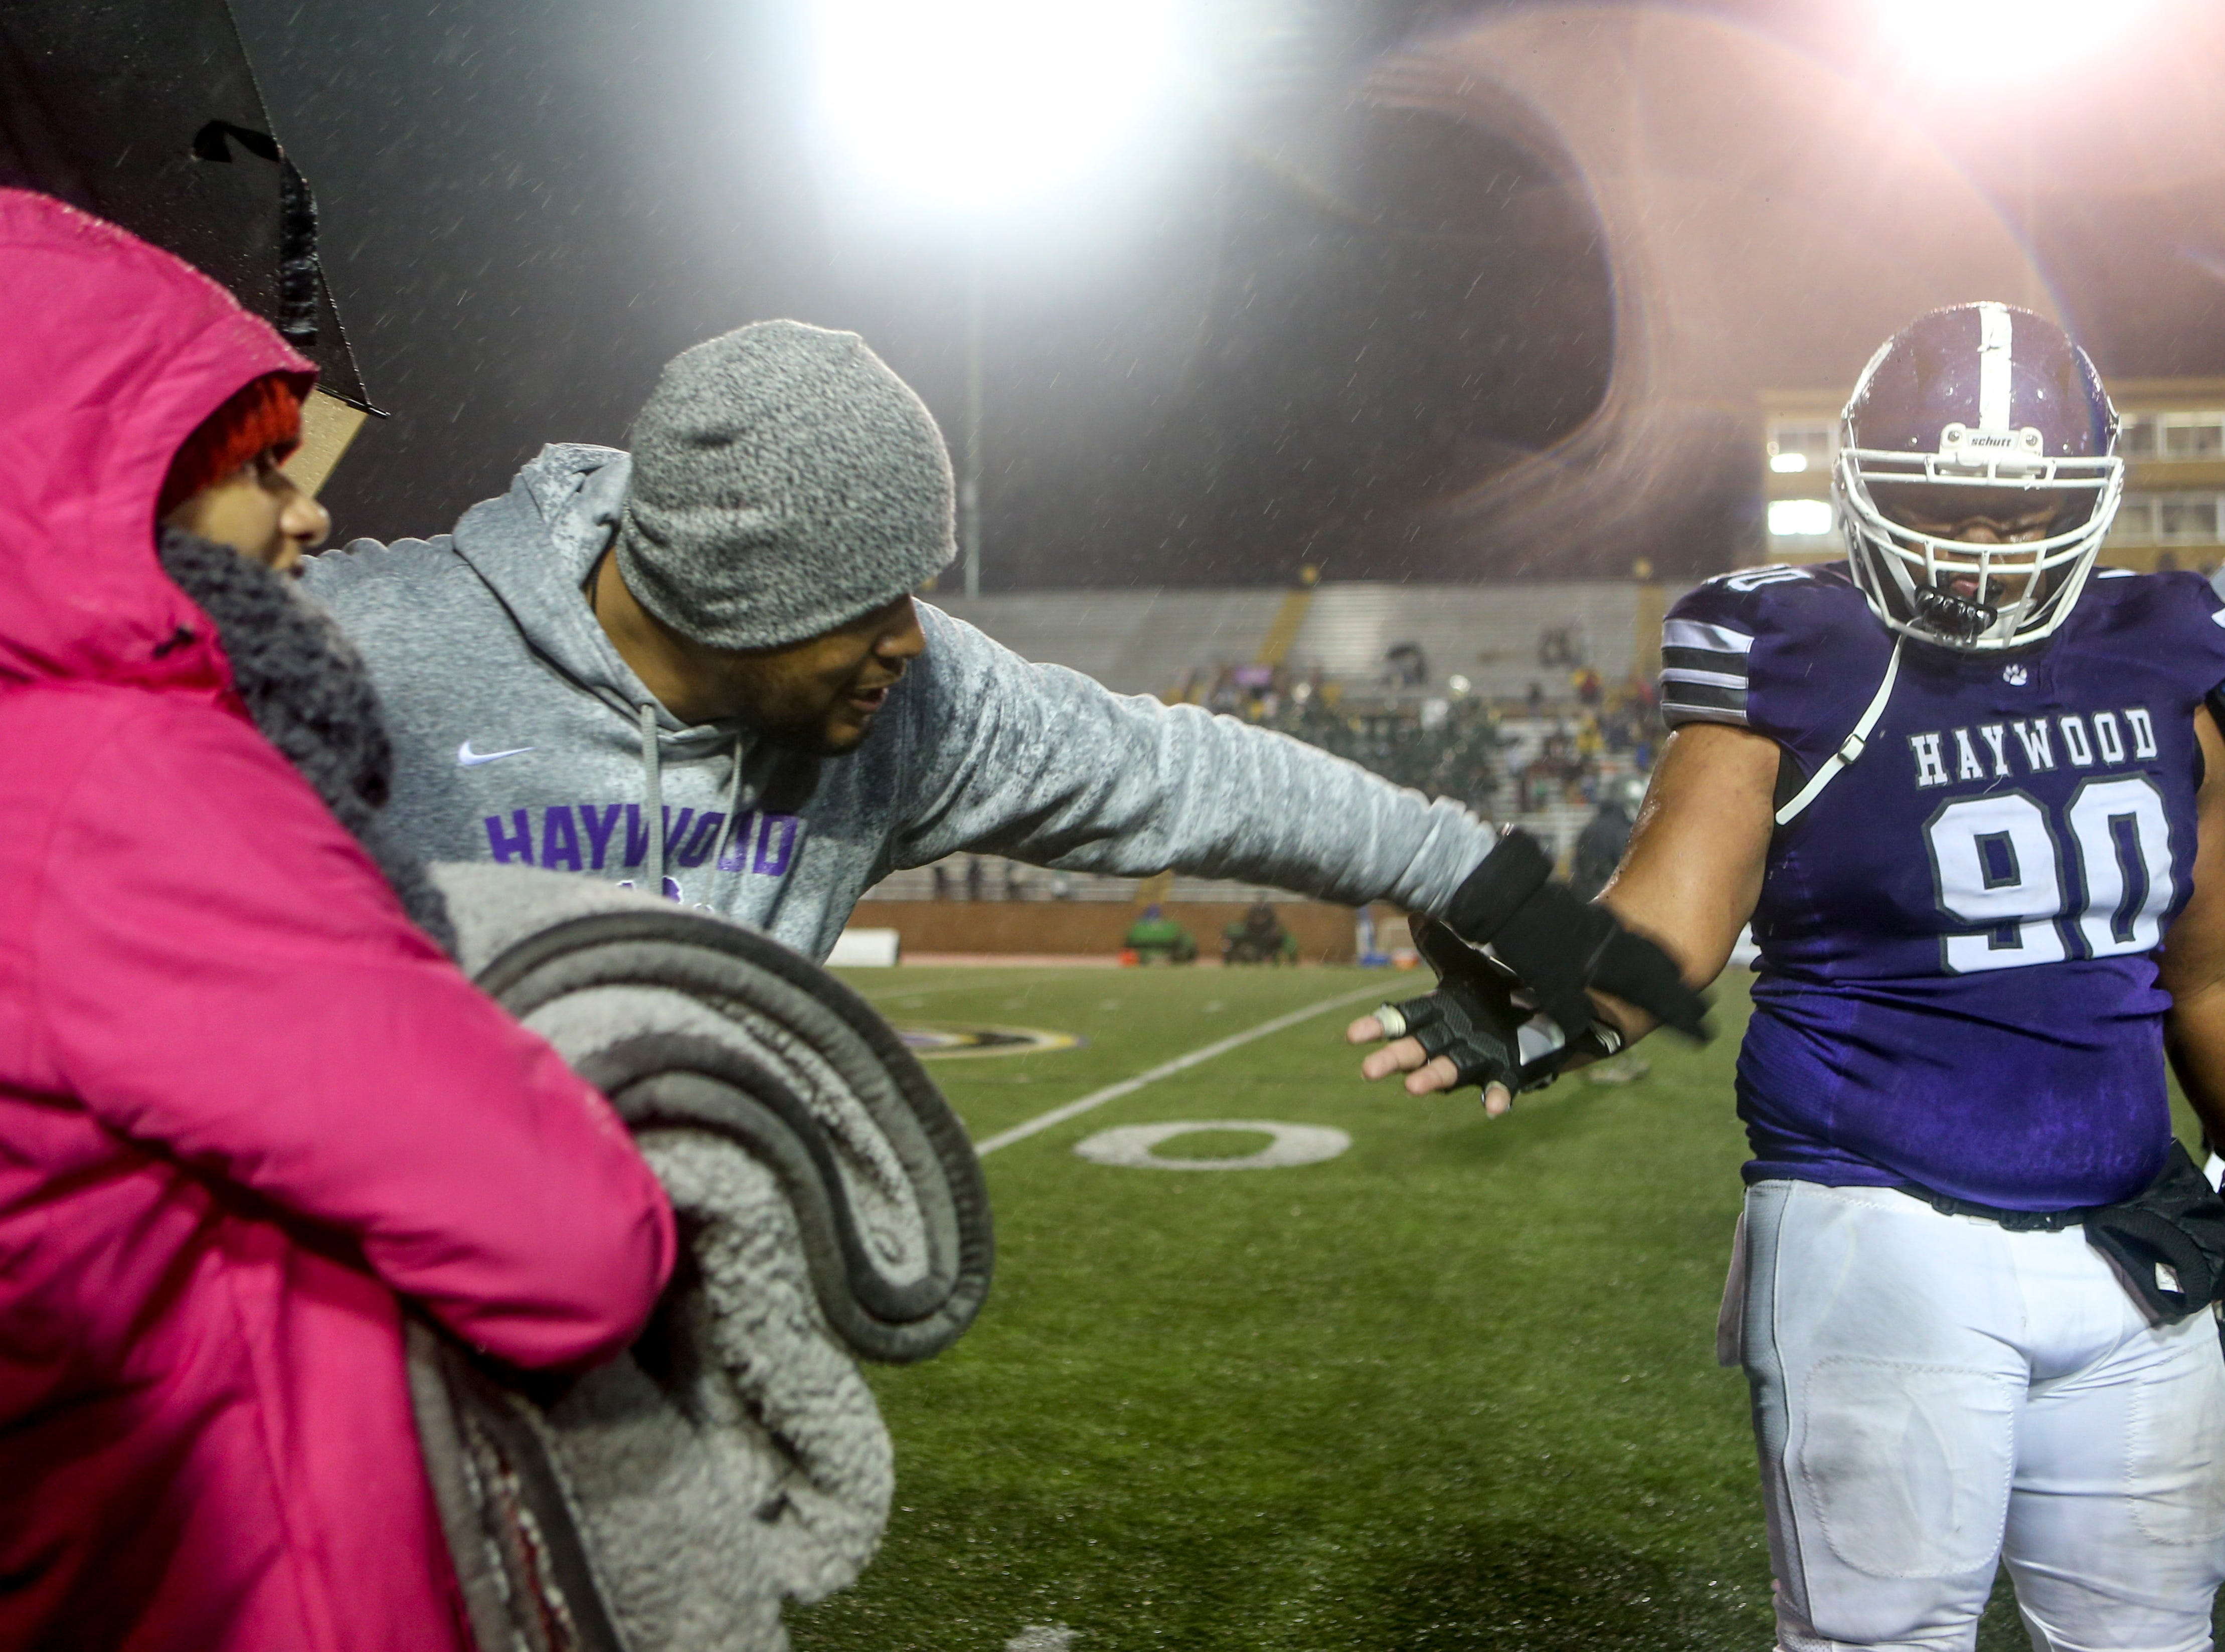 Steve Hookfin reaches out to high five Haywood's Emanuel Beard (90) while speaking with his family during the Class 4A Blue Cross Bowl between Haywood and Greeneville at Tennessee Tech's Tucker Stadium in Cookeville, Tenn., on Thursday, Nov. 29, 2018.